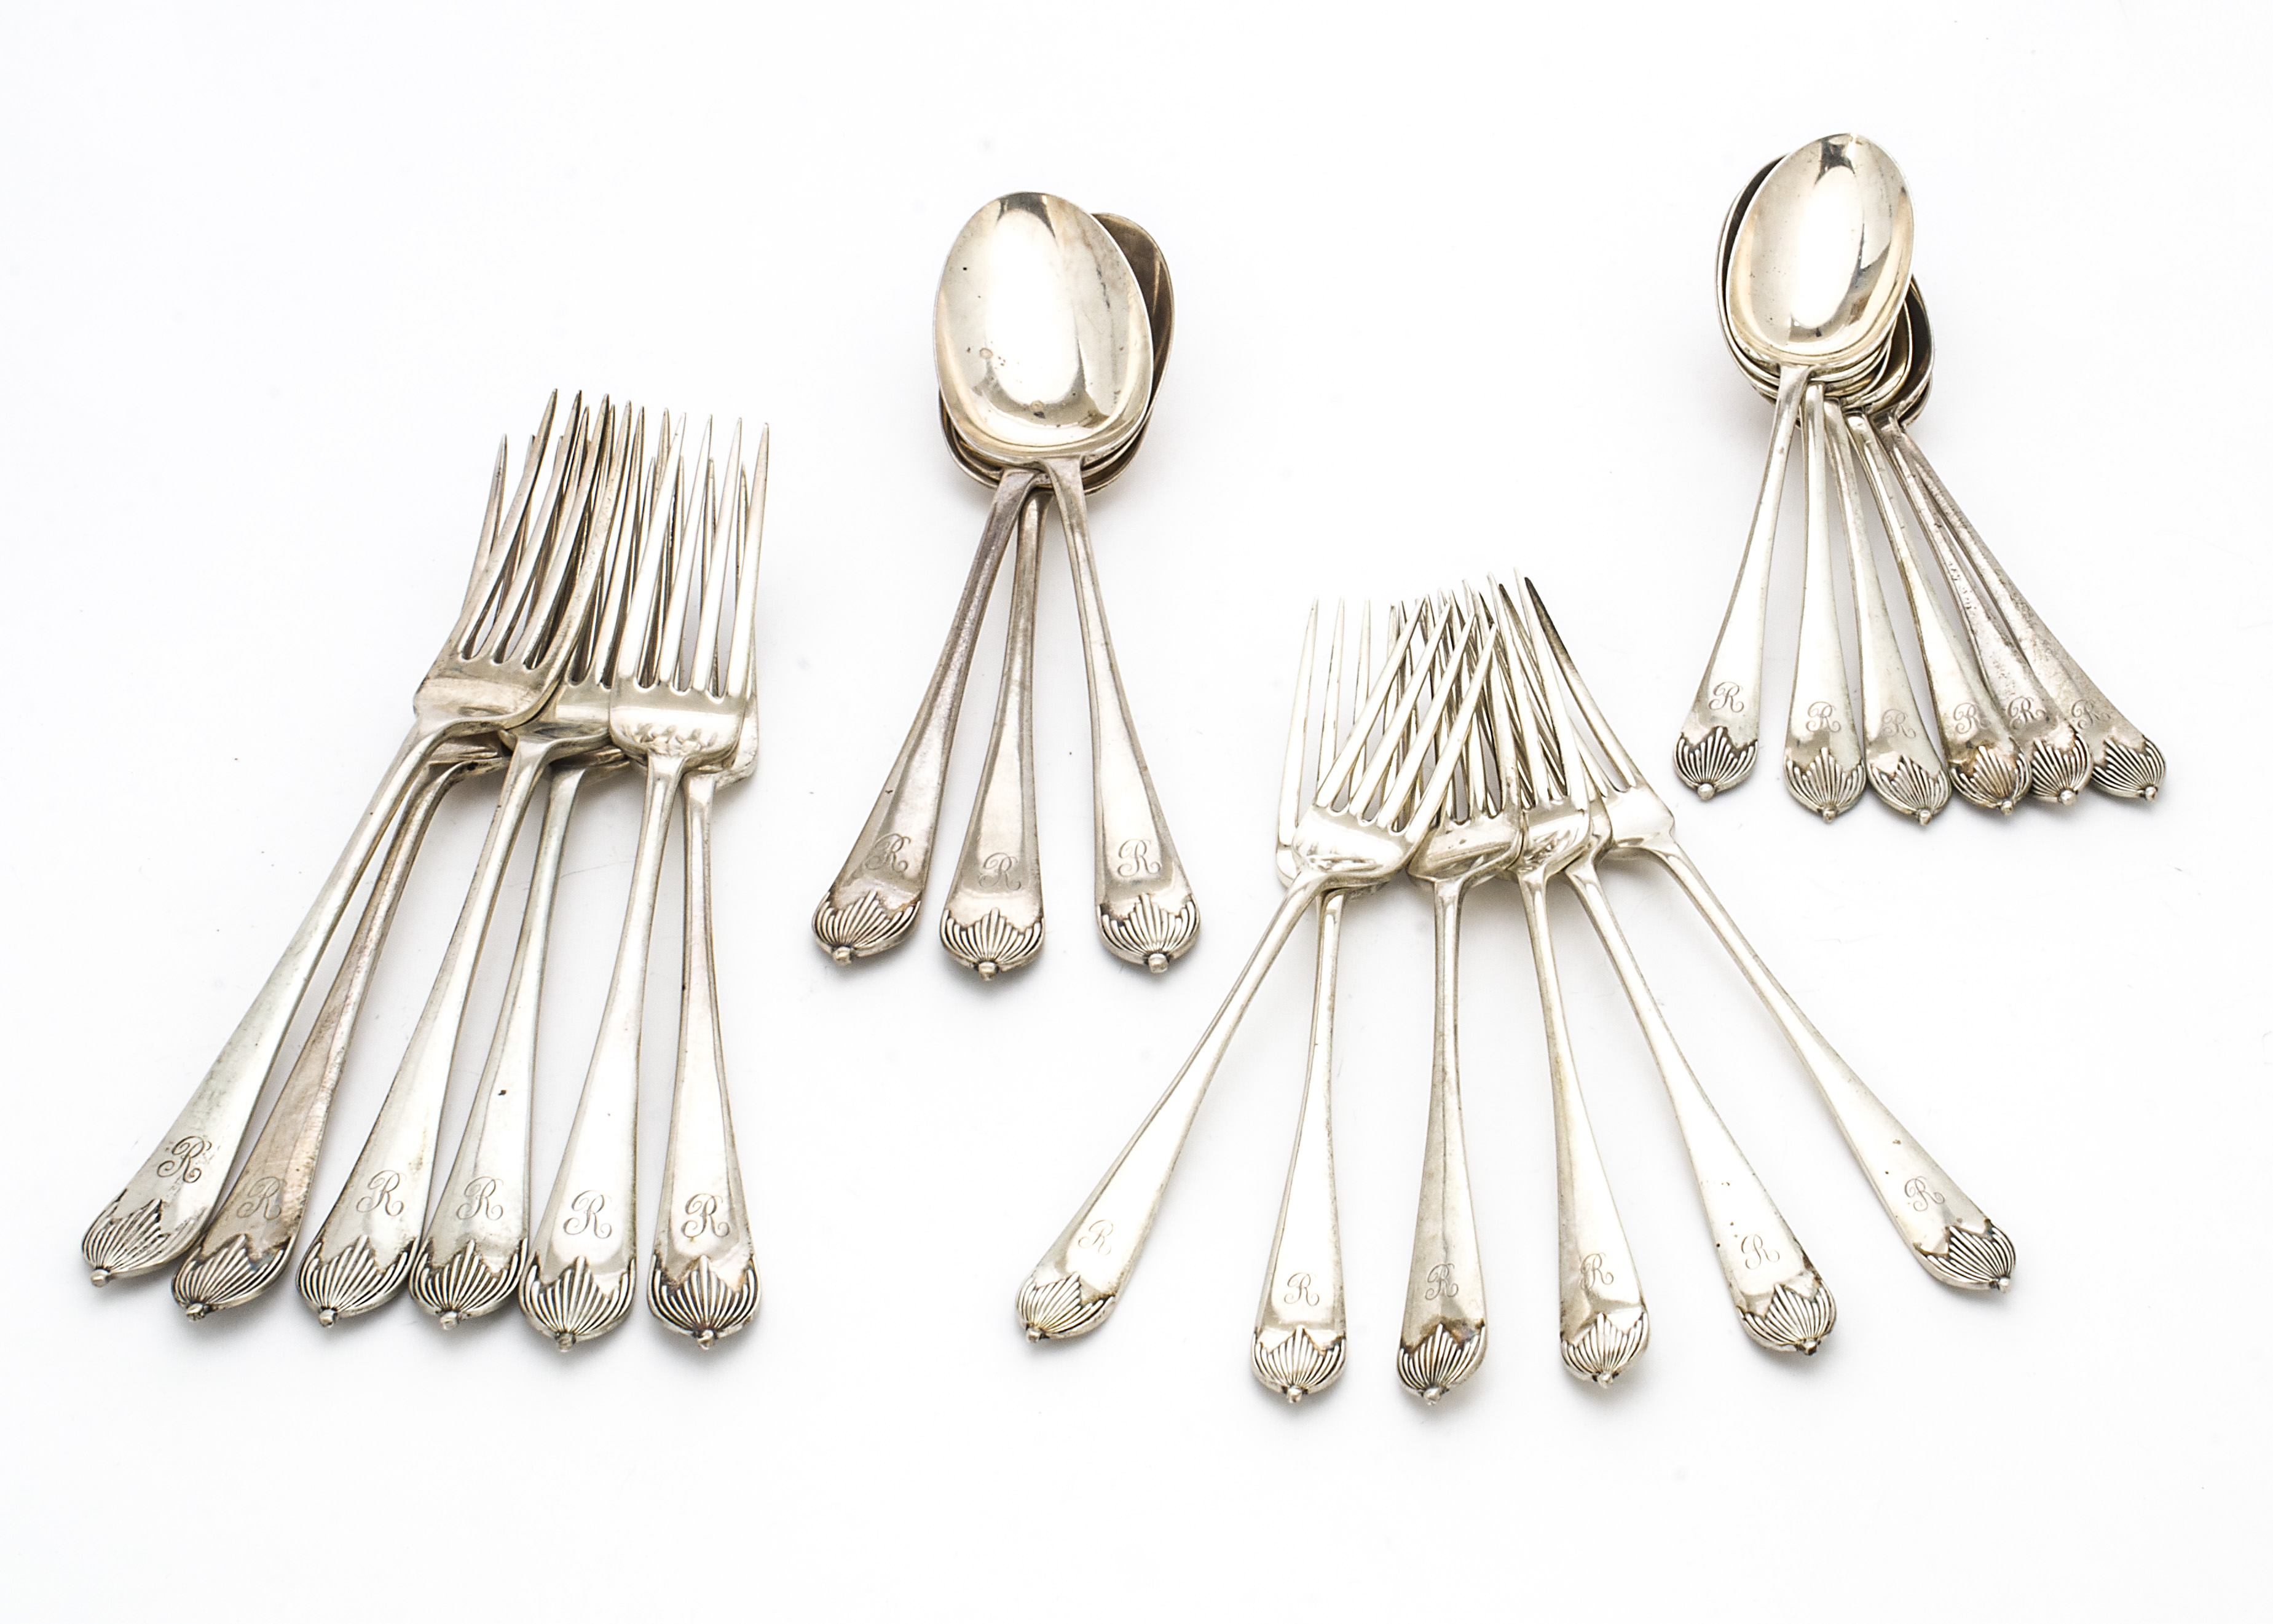 Lot 42 - A George V silver part canteen of cutlery from Mappin & Webb, including three tablespoons, six